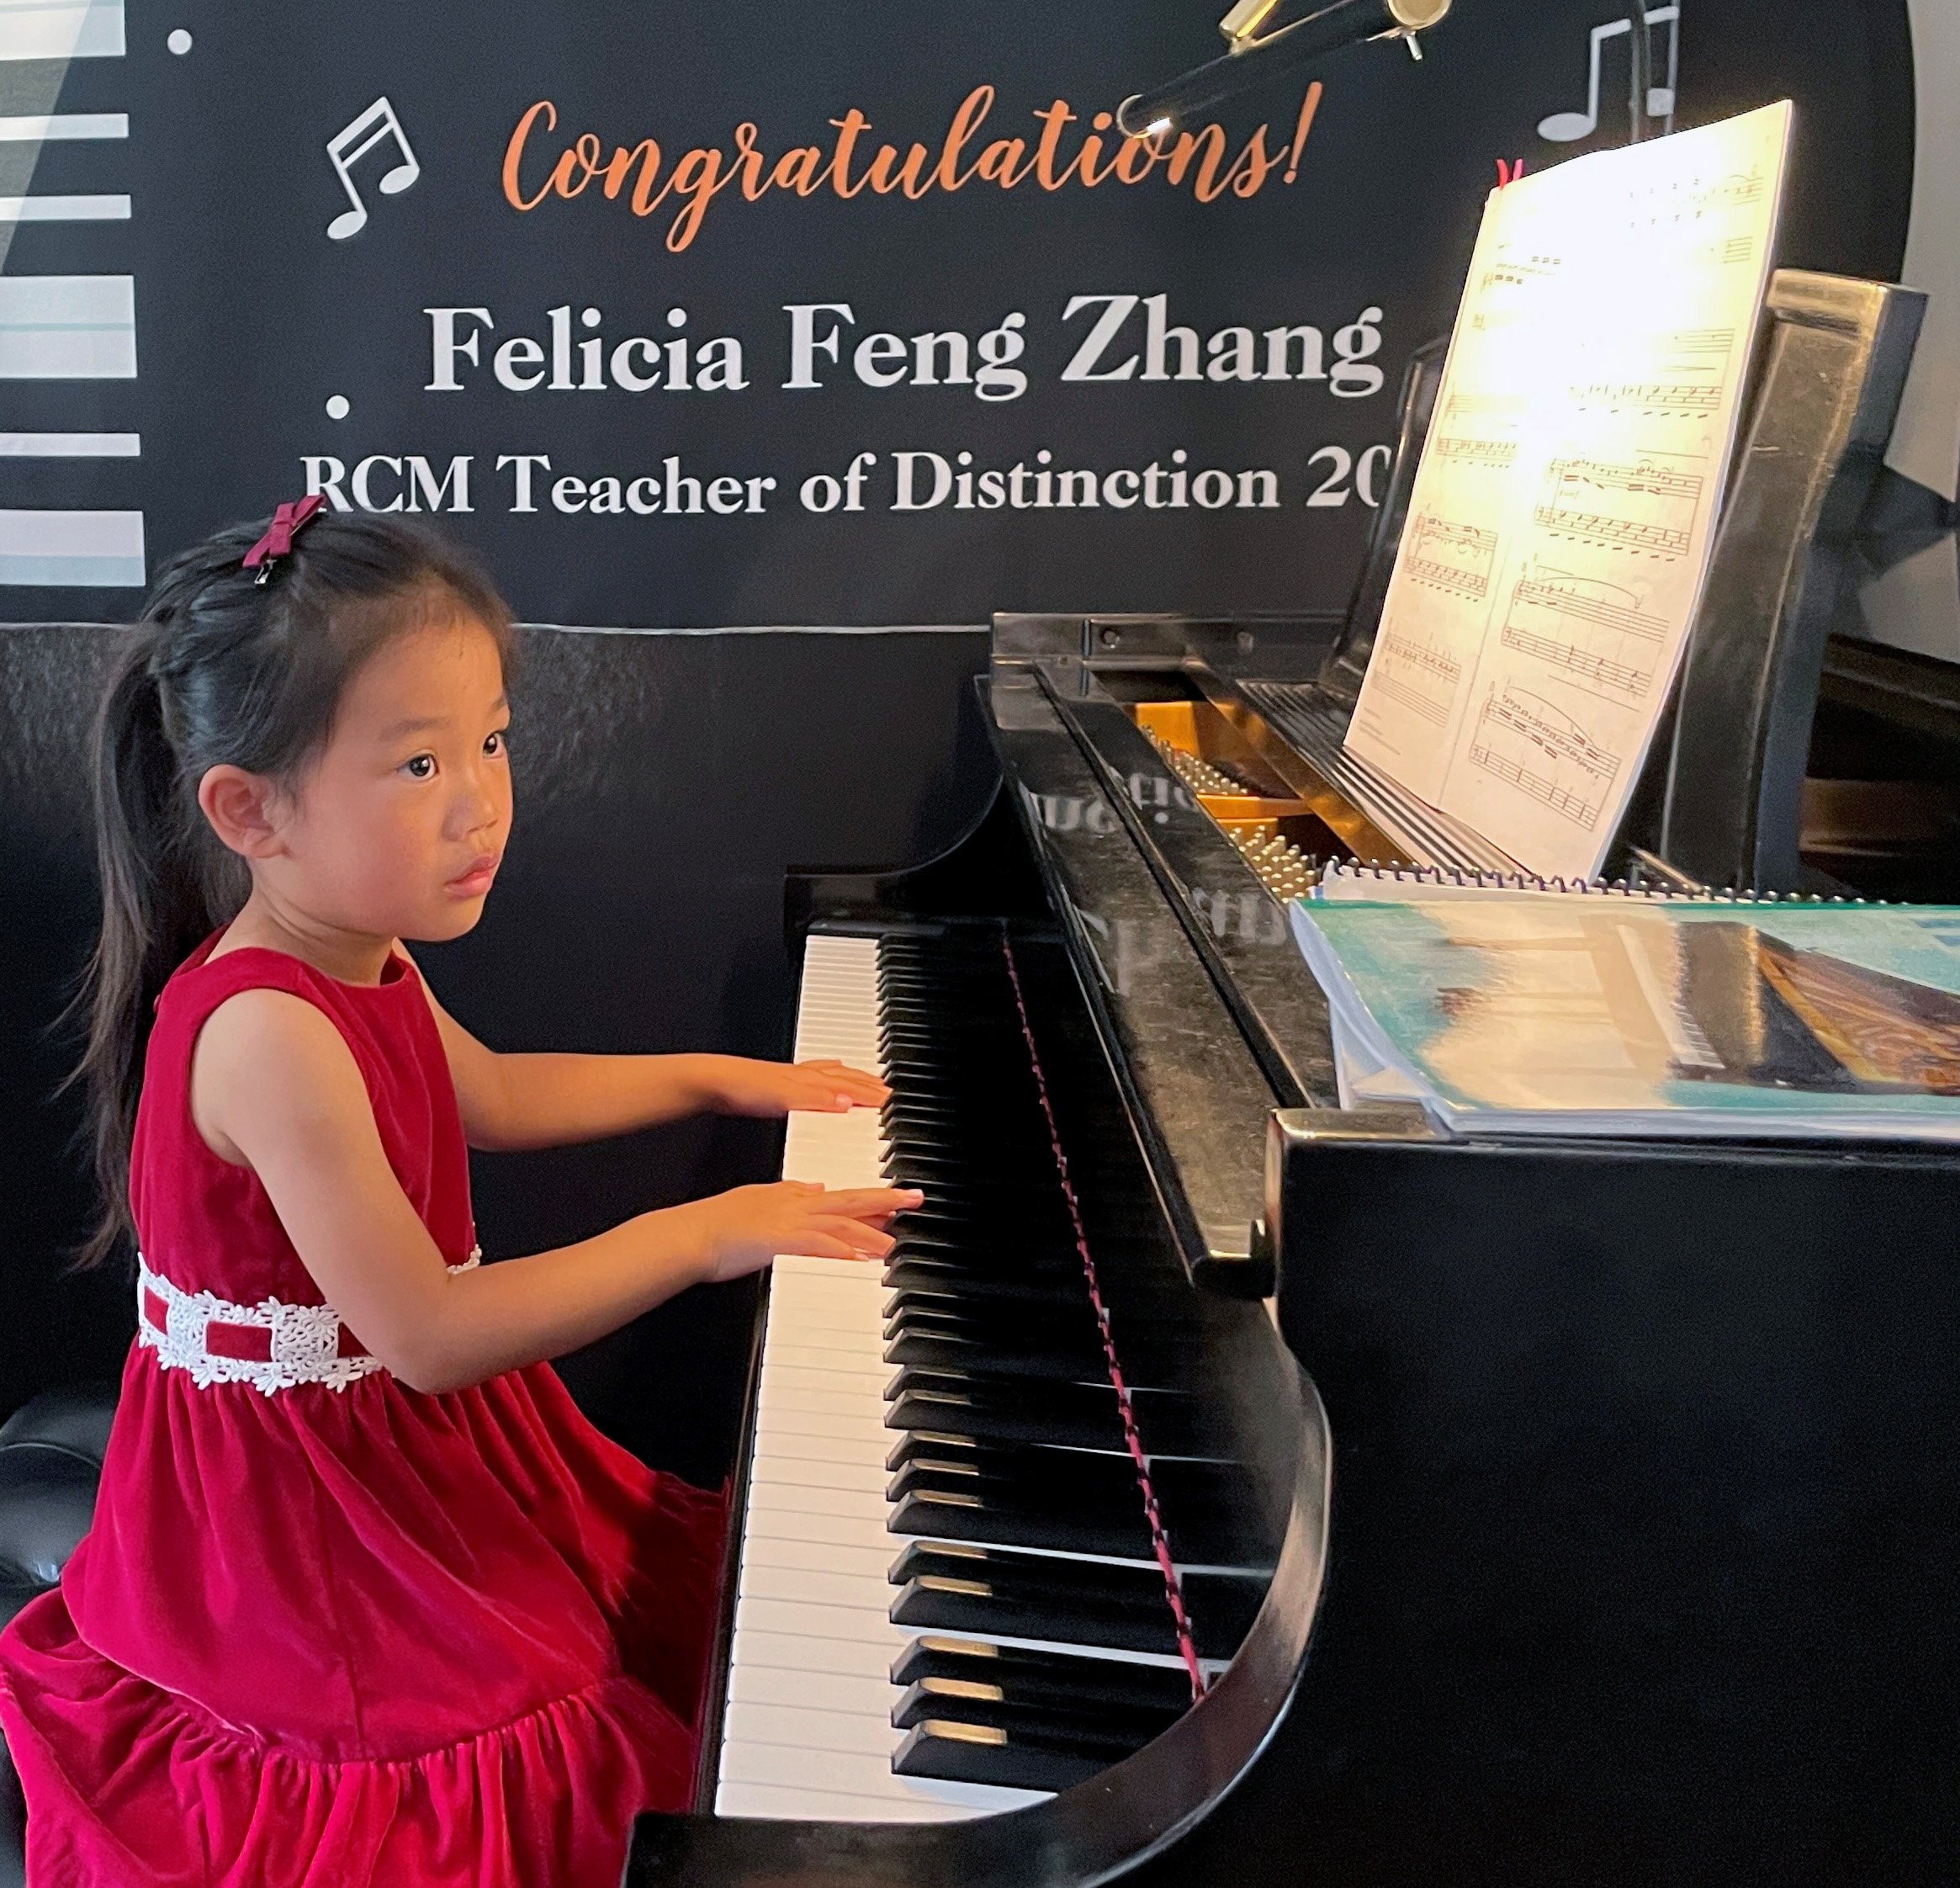 Brigitte Xie, 4, plays piano at piano teacher Felicia Feng Zhang's home in Greenwich, Connecticut, U.S. July 31, 2021. REUTERS/Roselle Chen